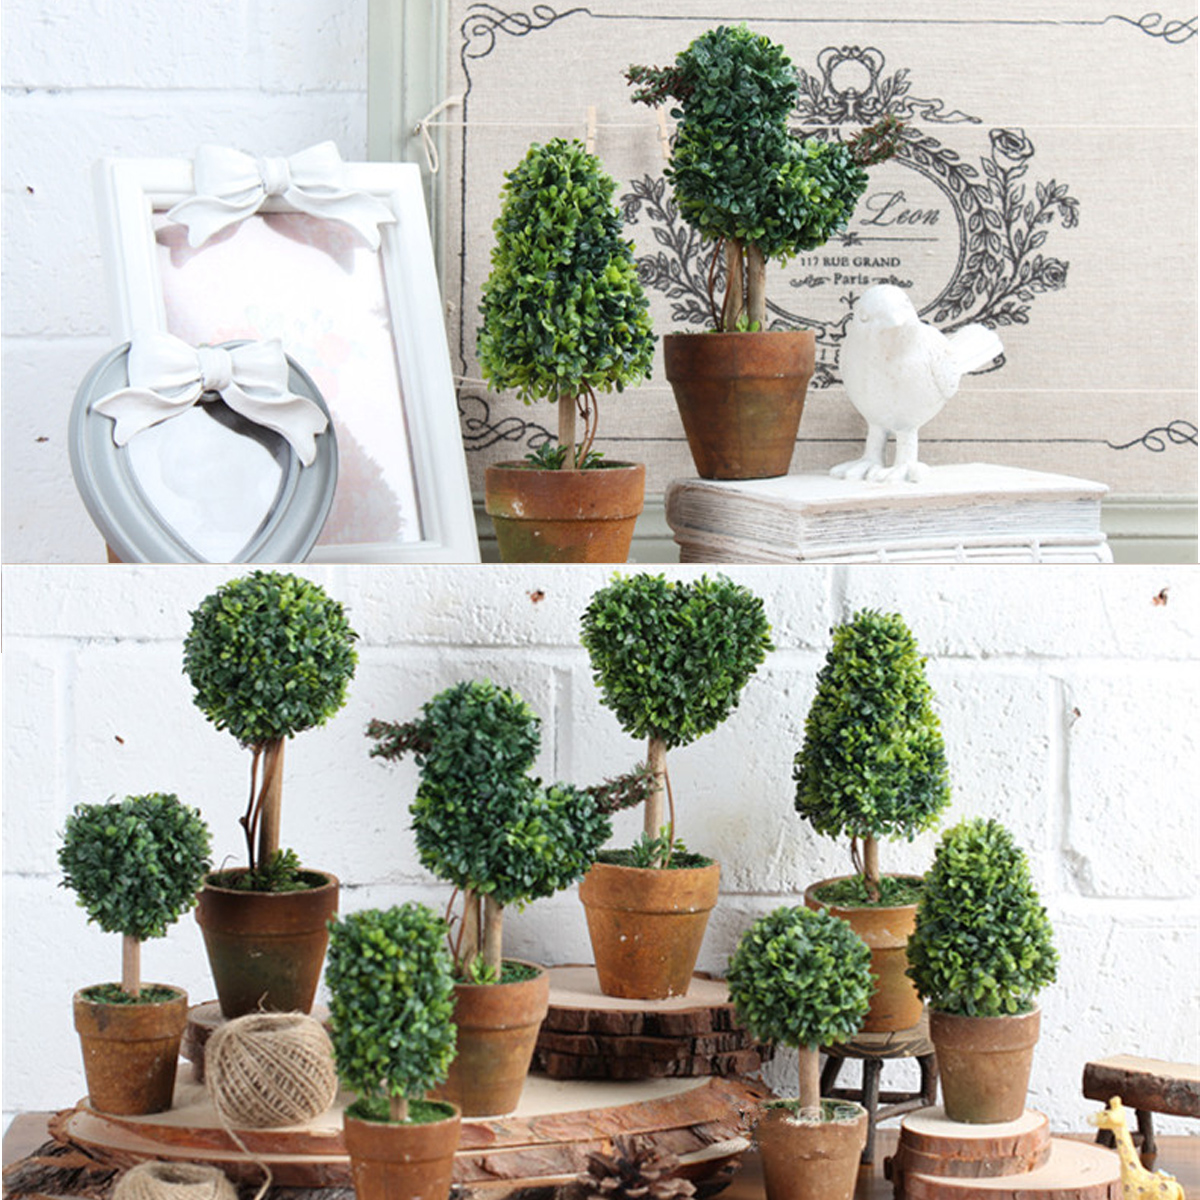 Tree Decor For Home: Artificial Potted Plant Plastic Garden Grass Ball Topiary